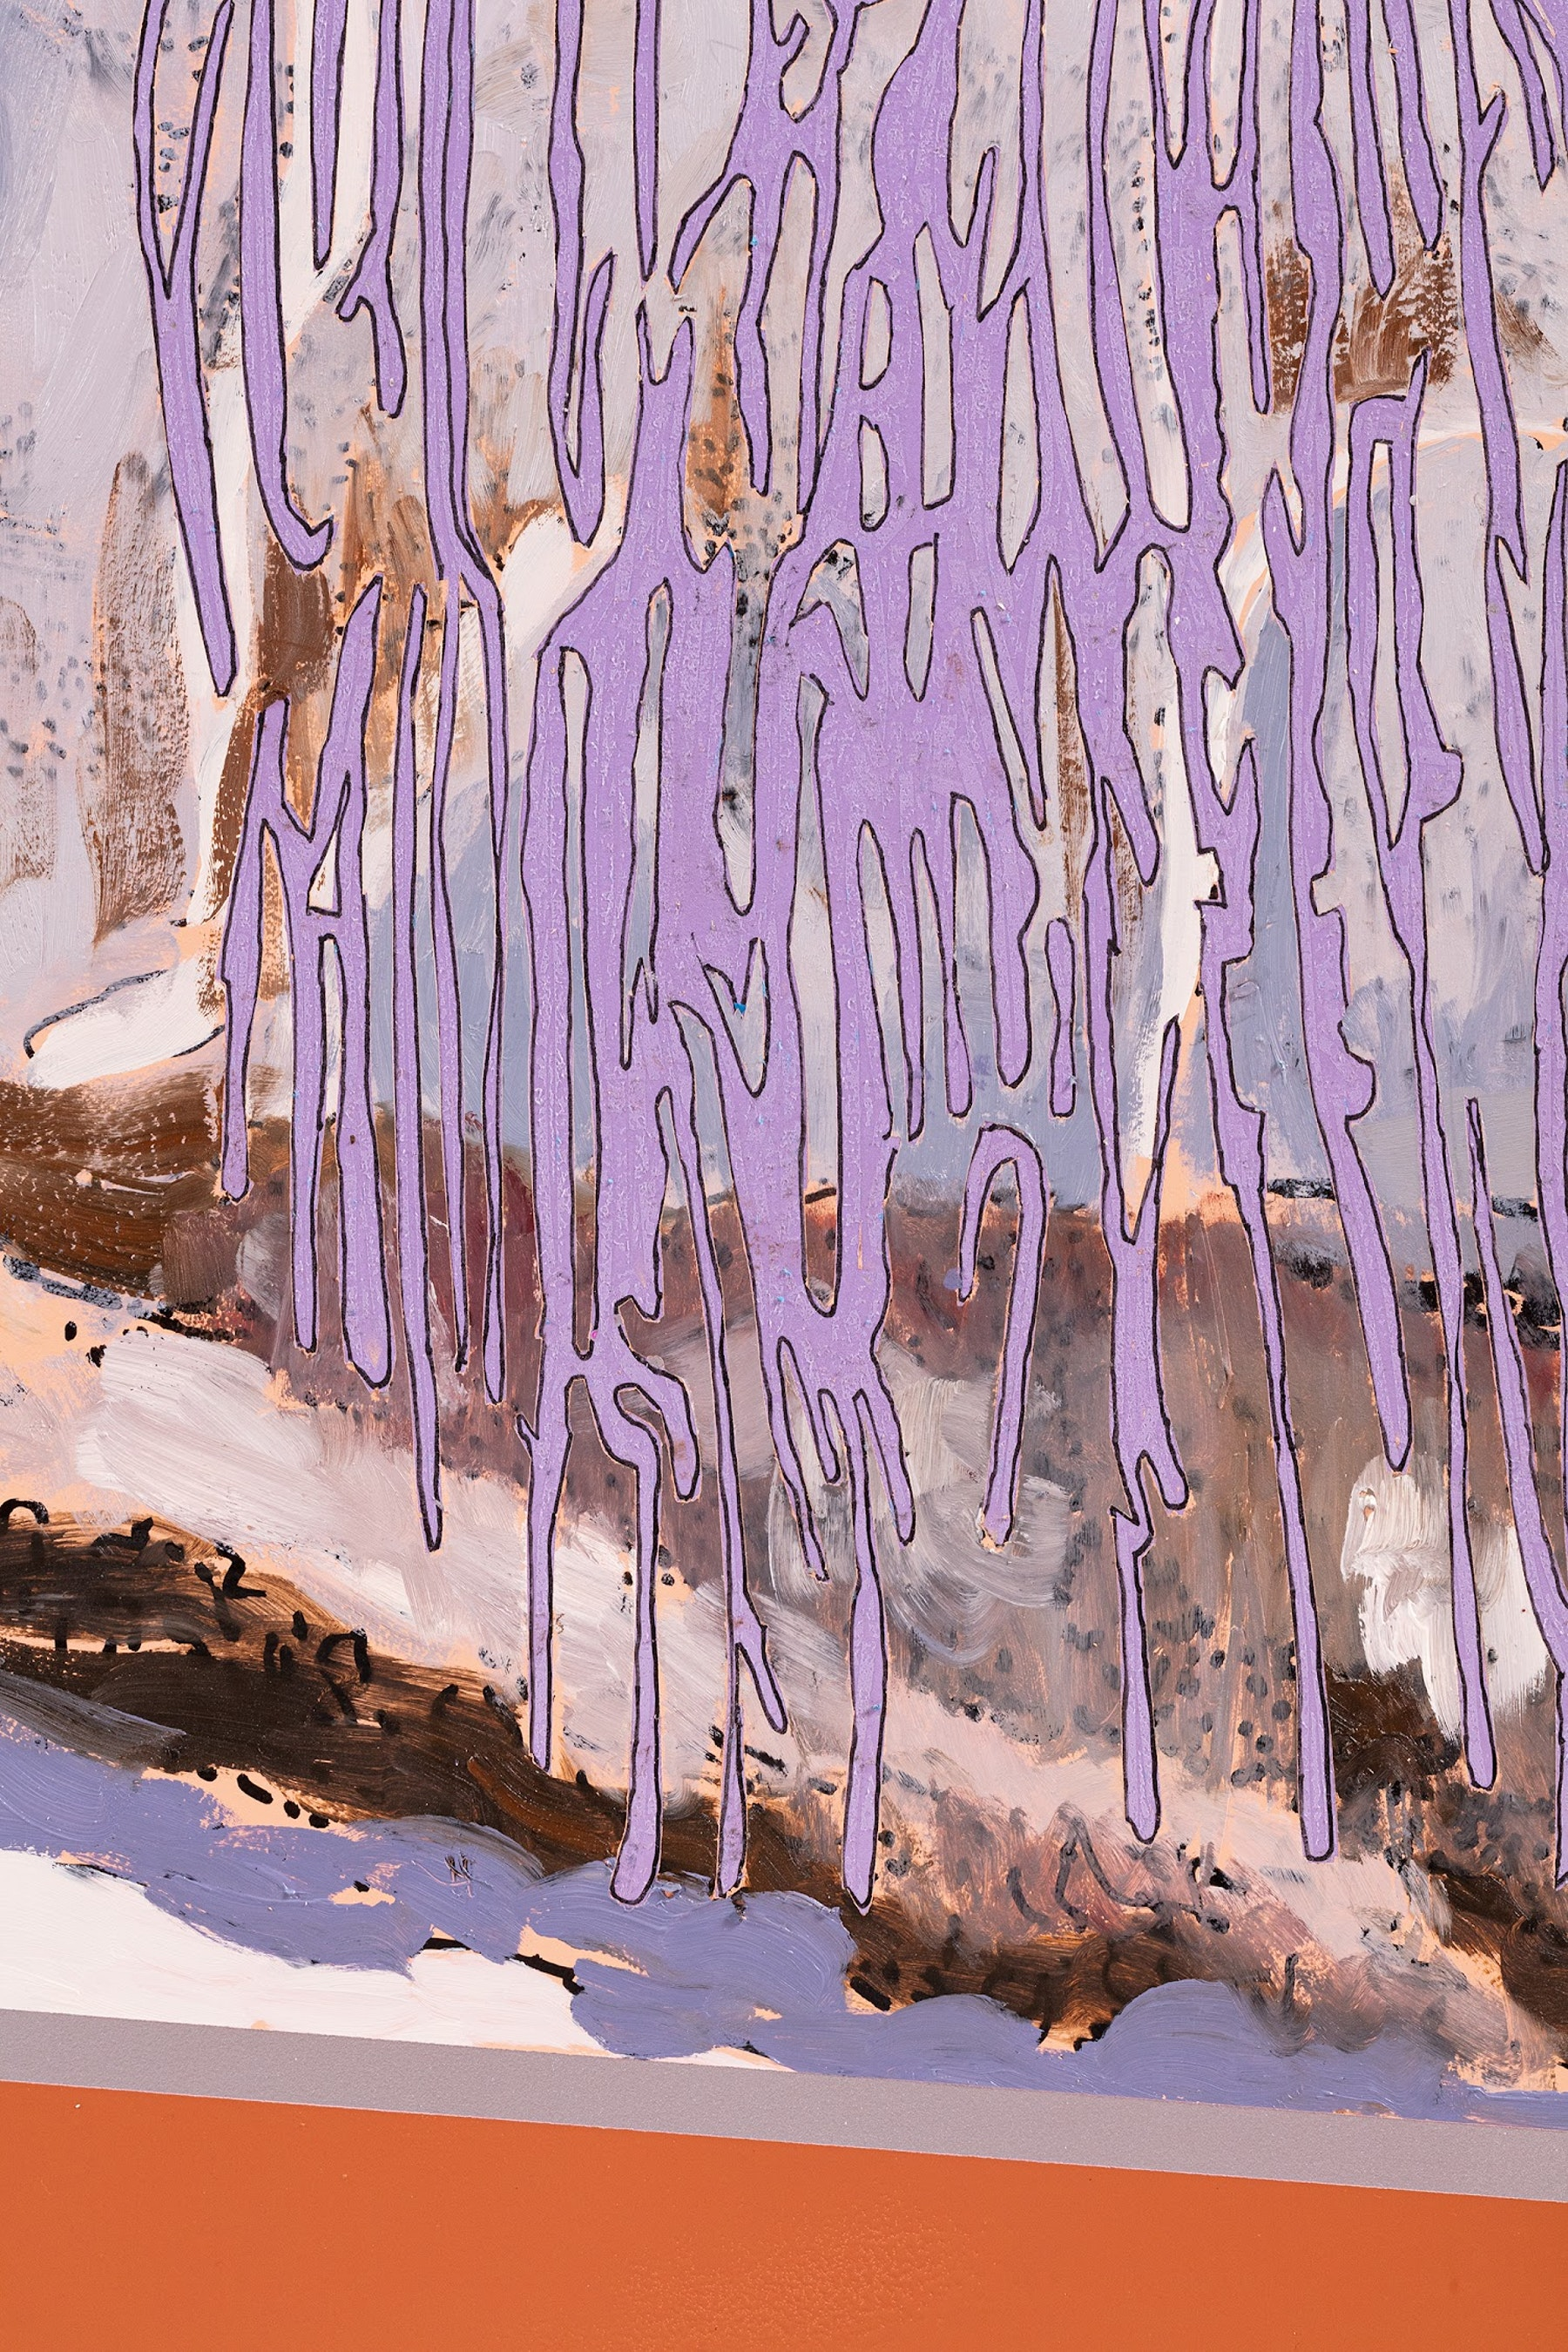 """Whitney Bedford """"Veduta (Vuillard Purple Trees),"""" 2021 Ink and oil on linen on hybrid panel 60"""" x 86"""" [HxW] (152.4 x 218.44 cm) Inventory #BED413 Courtesy of the artist and Vielmetter Los Angeles Photo credit: Evan Bedford"""